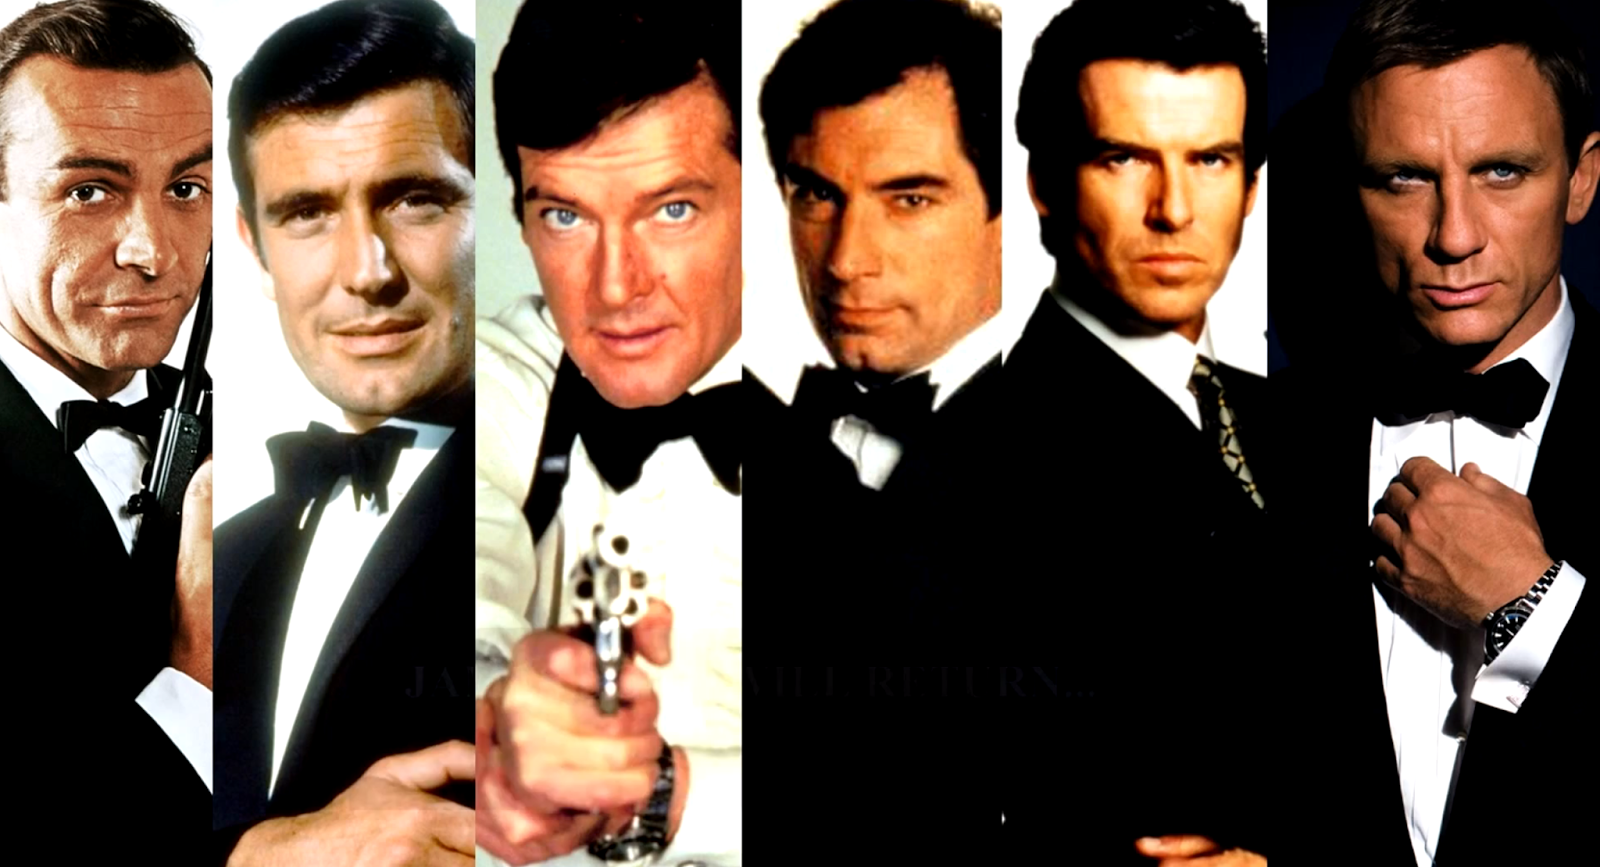 why arent you studying the james bond movies